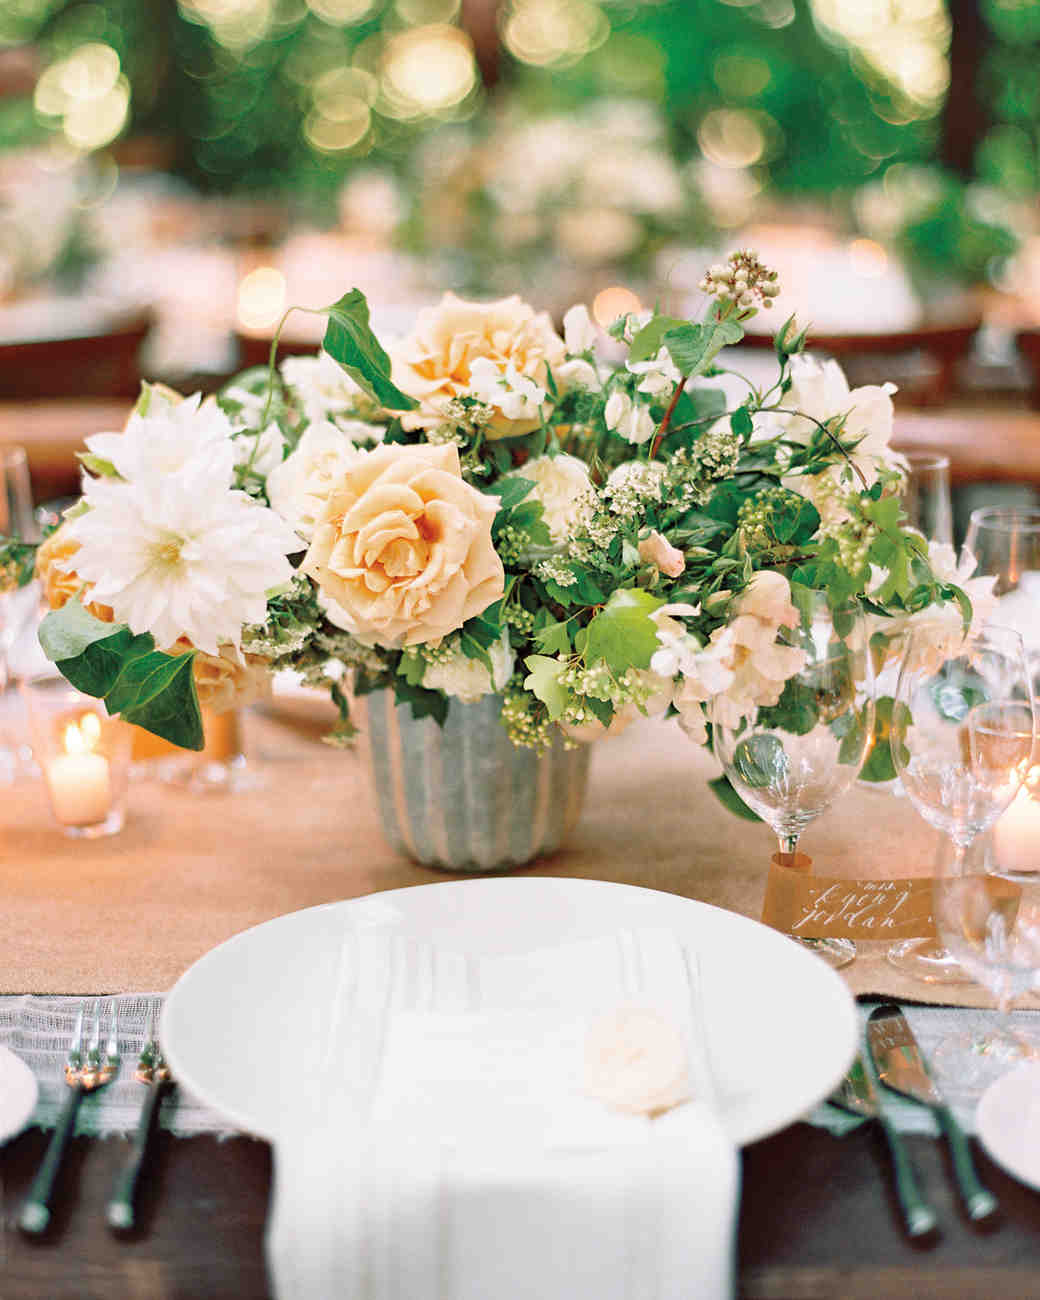 amazing Vintage Decorating Ideas For Weddings Part - 7: Overflowing Centerpiece